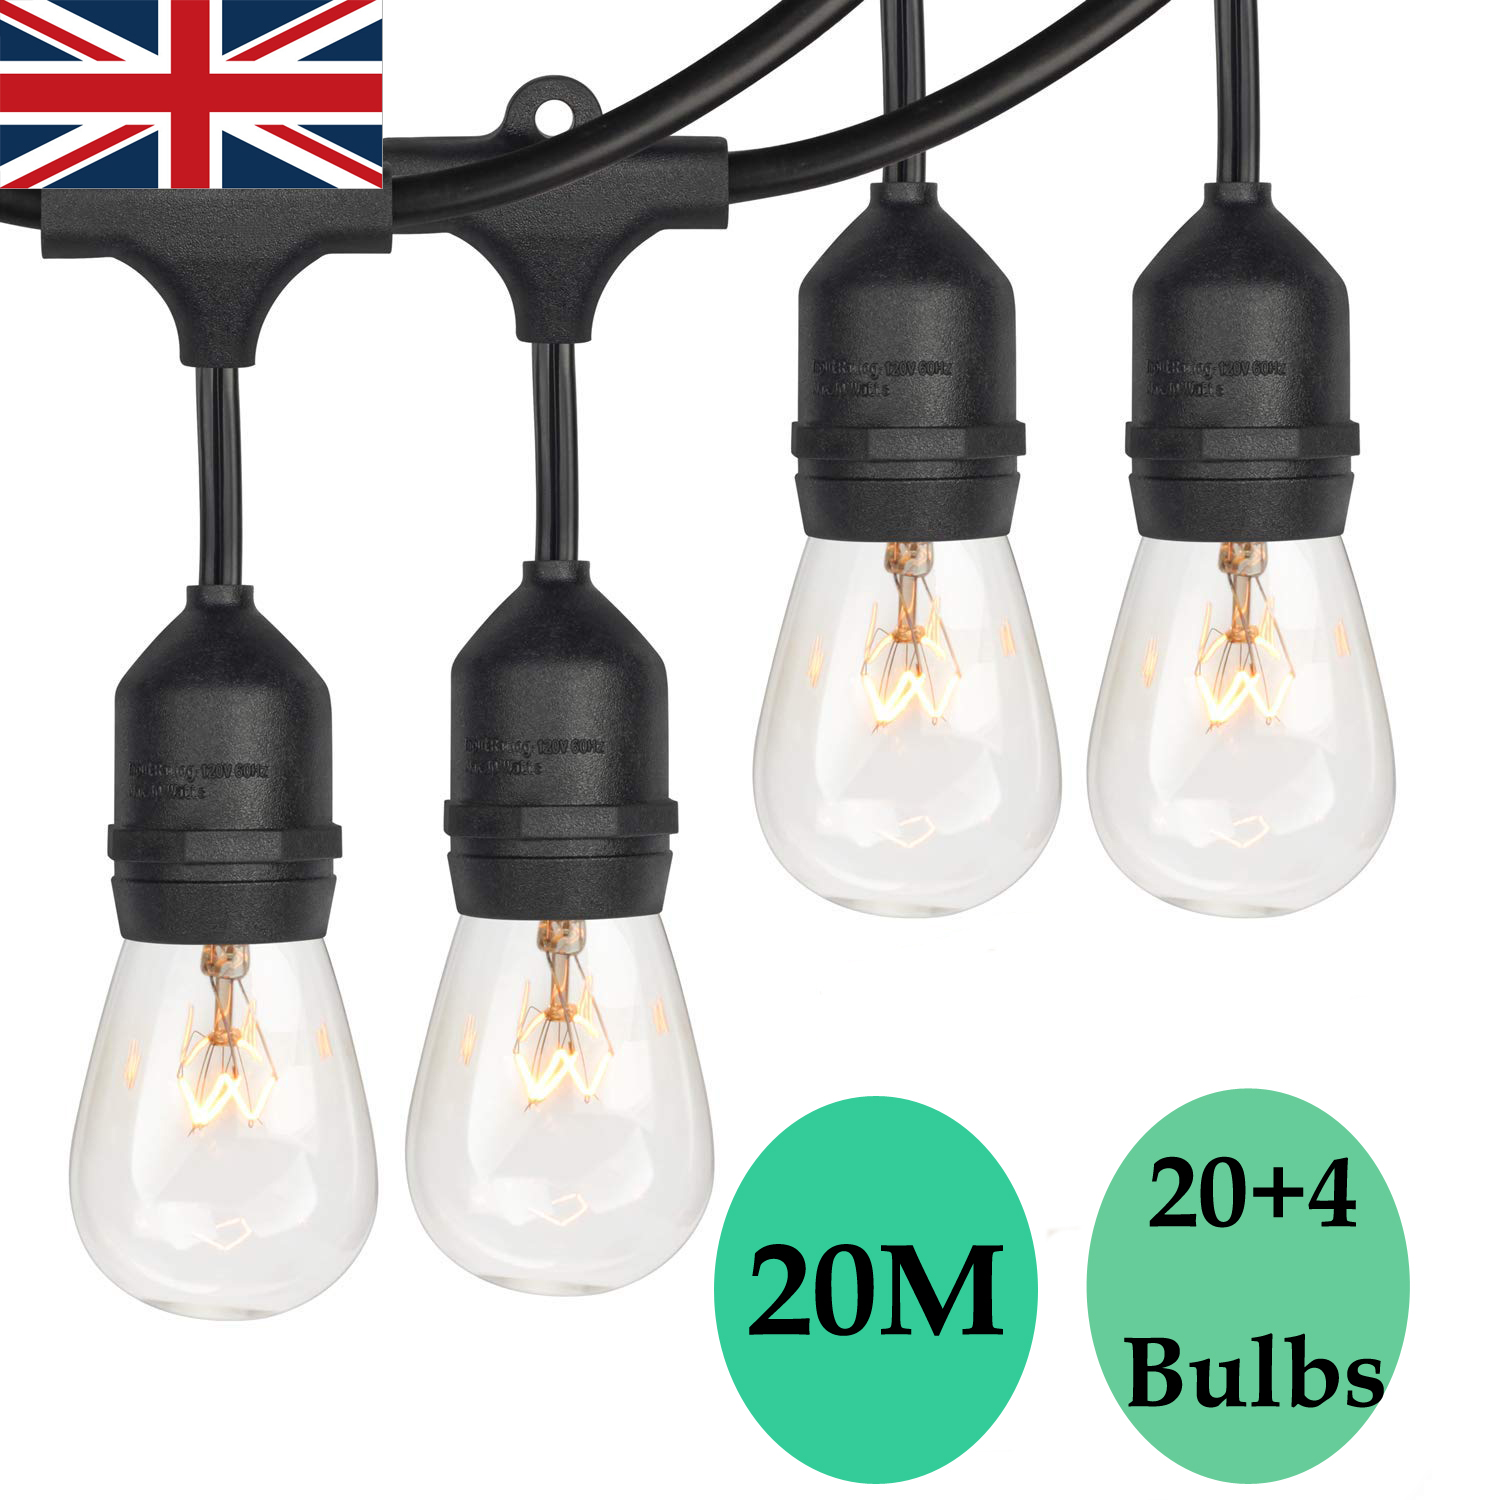 Details About 3 X 20m S14 Festoon Garden String Lights Christmas Outdoor Party Lighting Diy Uk